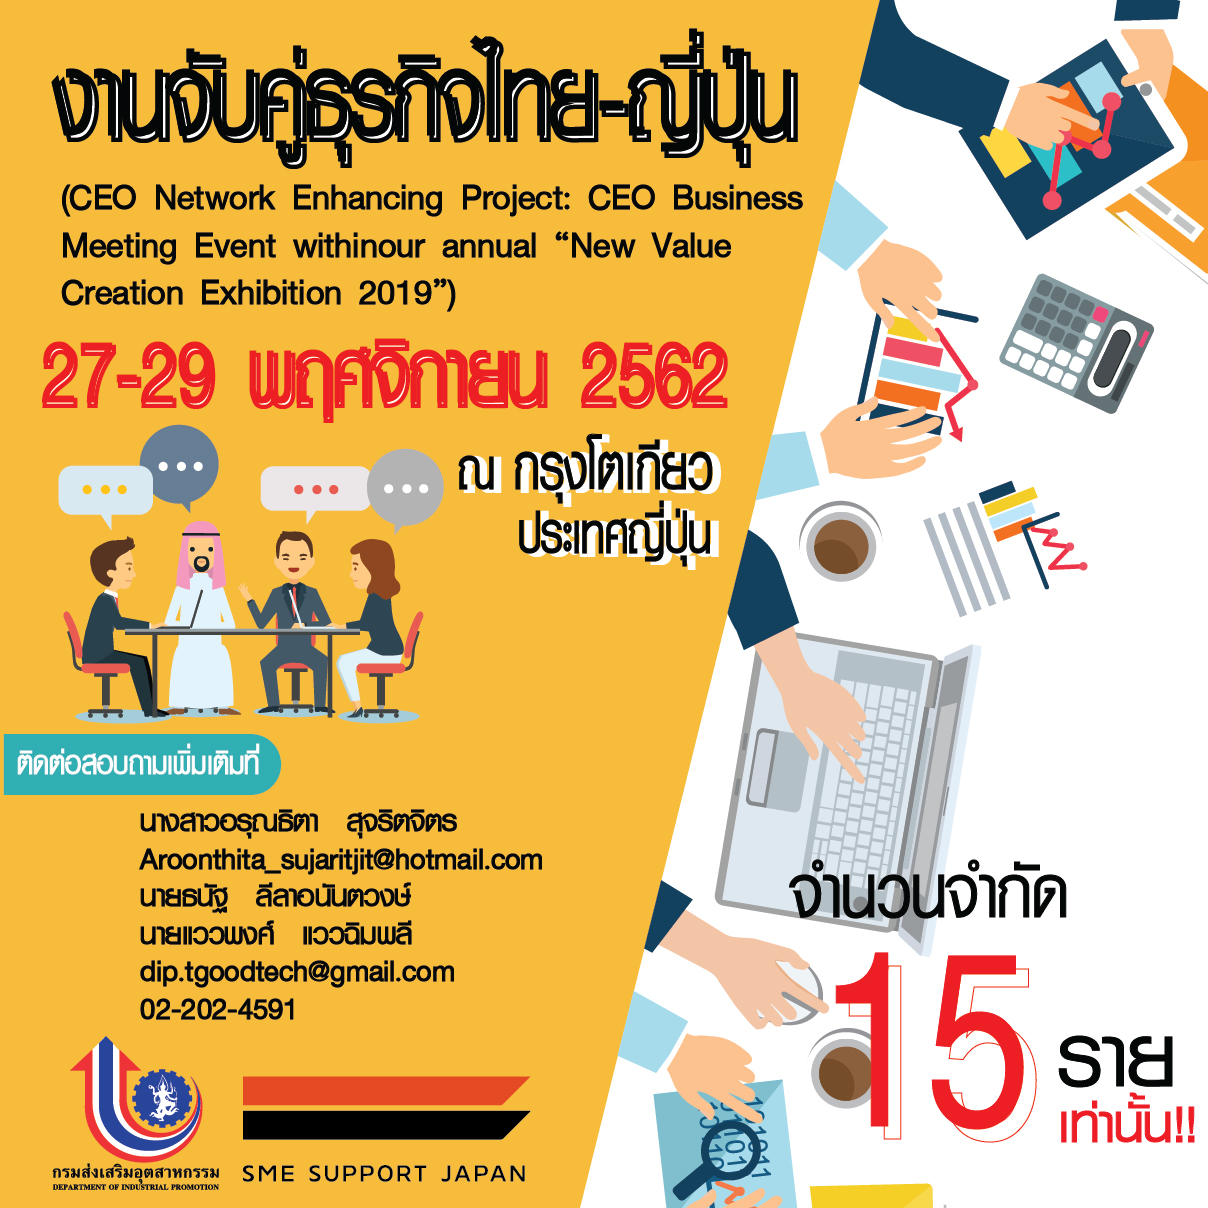 "งานจับคู่ธุรกิจไทย-ญี่ปุ่น  (CEO Network Enhancing Project : CEO Business Meeting Event within our annual ""New Value Creation Exhibition"")"